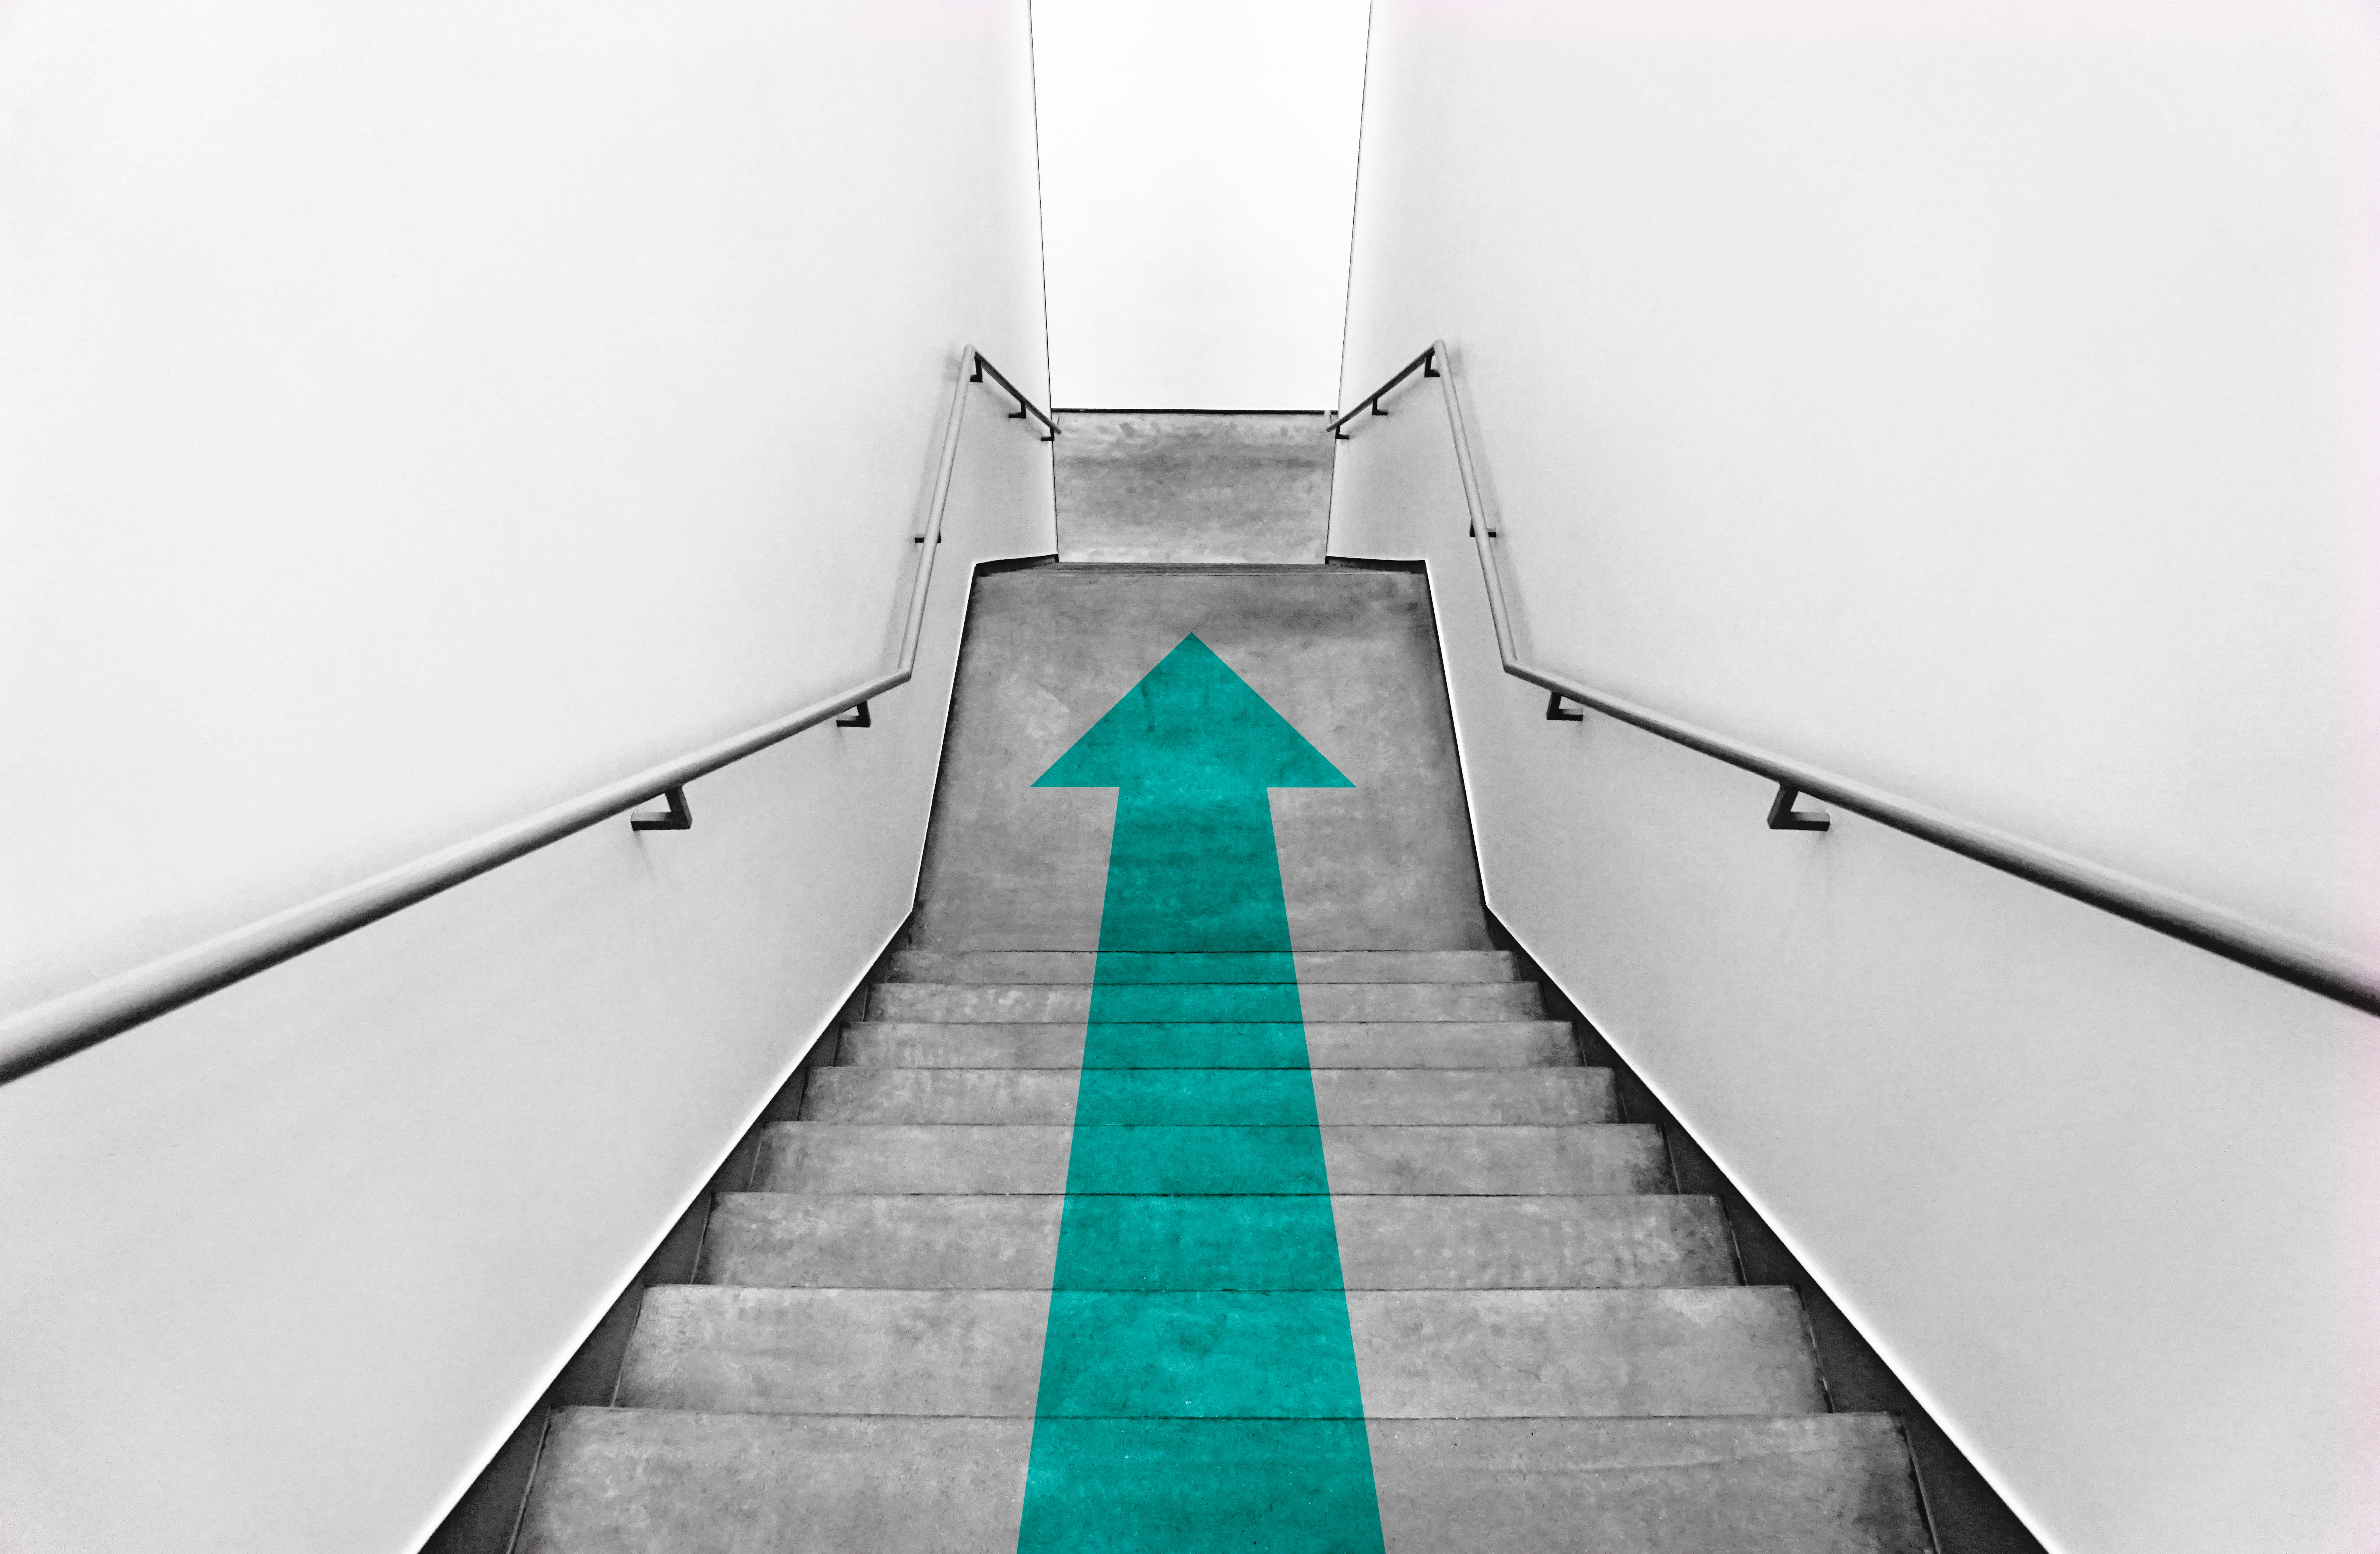 77661 download wallpaper Minimalism, Stairs, Ladder, Arrow, Pointer screensavers and pictures for free